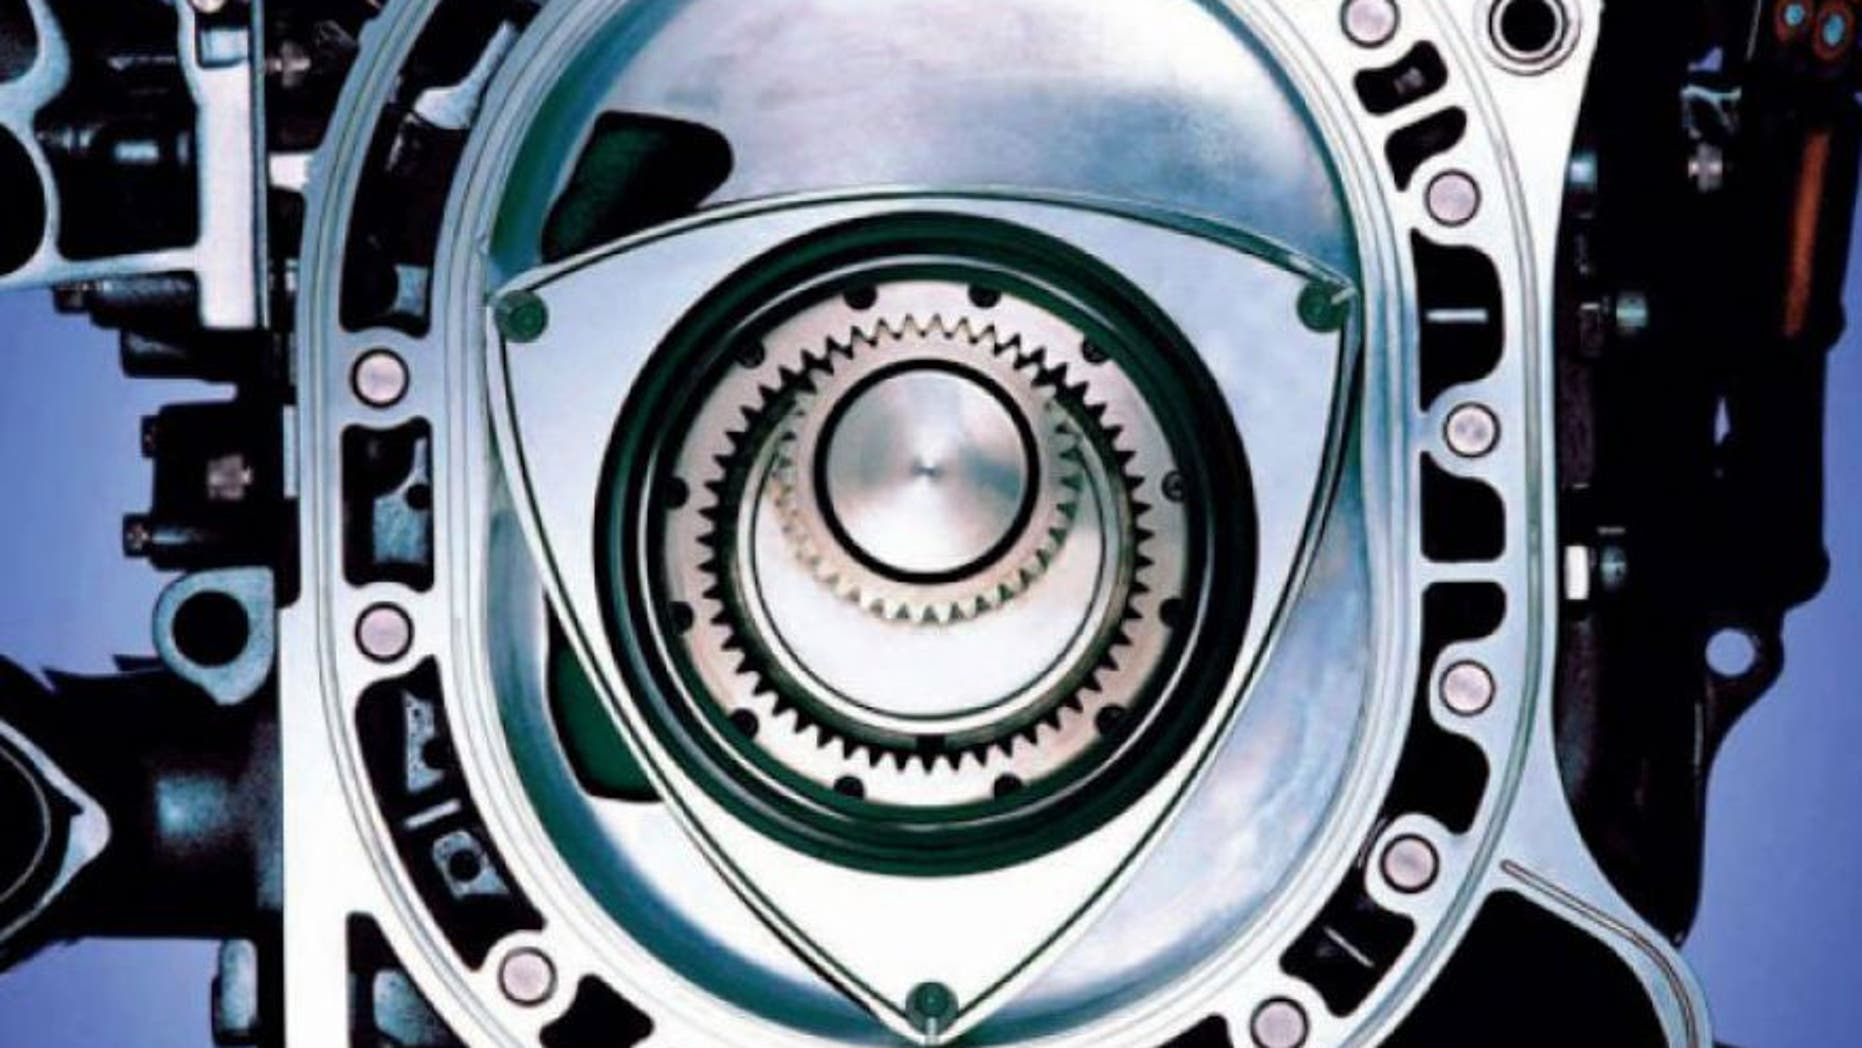 mazda rotary engine returning in 2019 fox news Mazda Rotary Engine Diagram mazda rx7 rotary engine, how it works